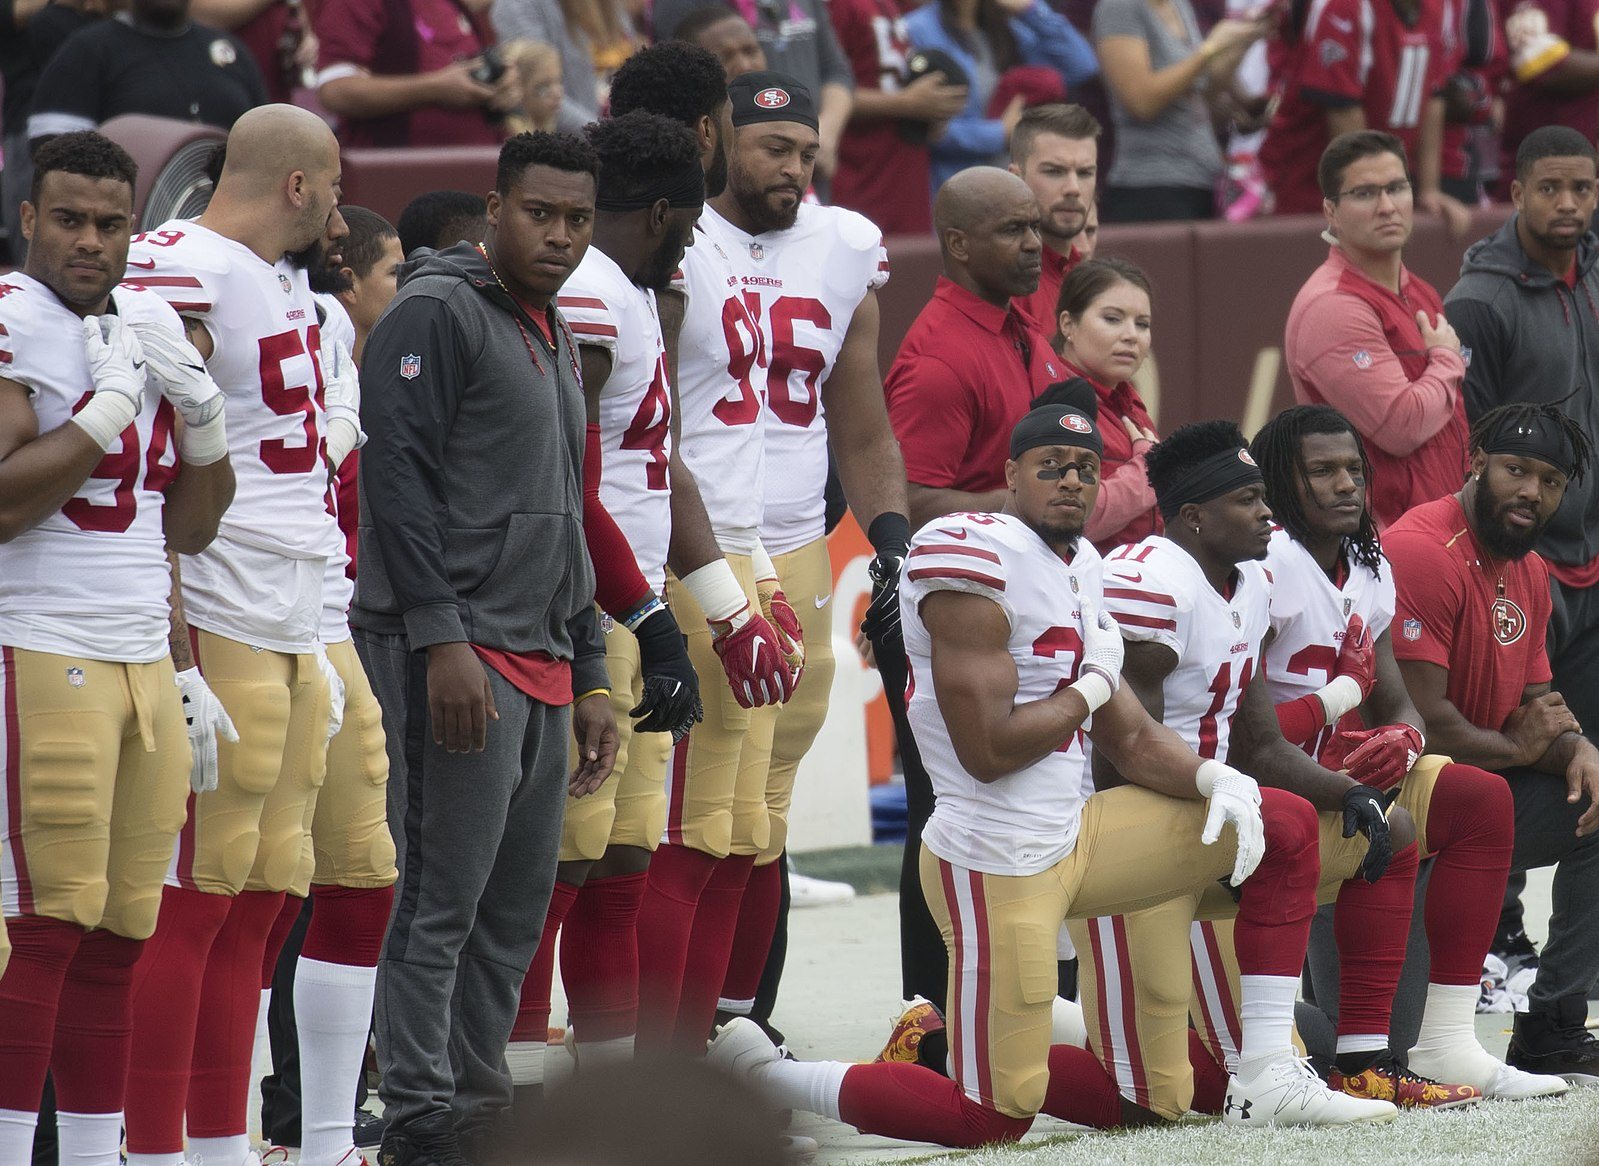 Kaepernick Was Not Being Unpatriotic When He Kneeled During the National Anthem